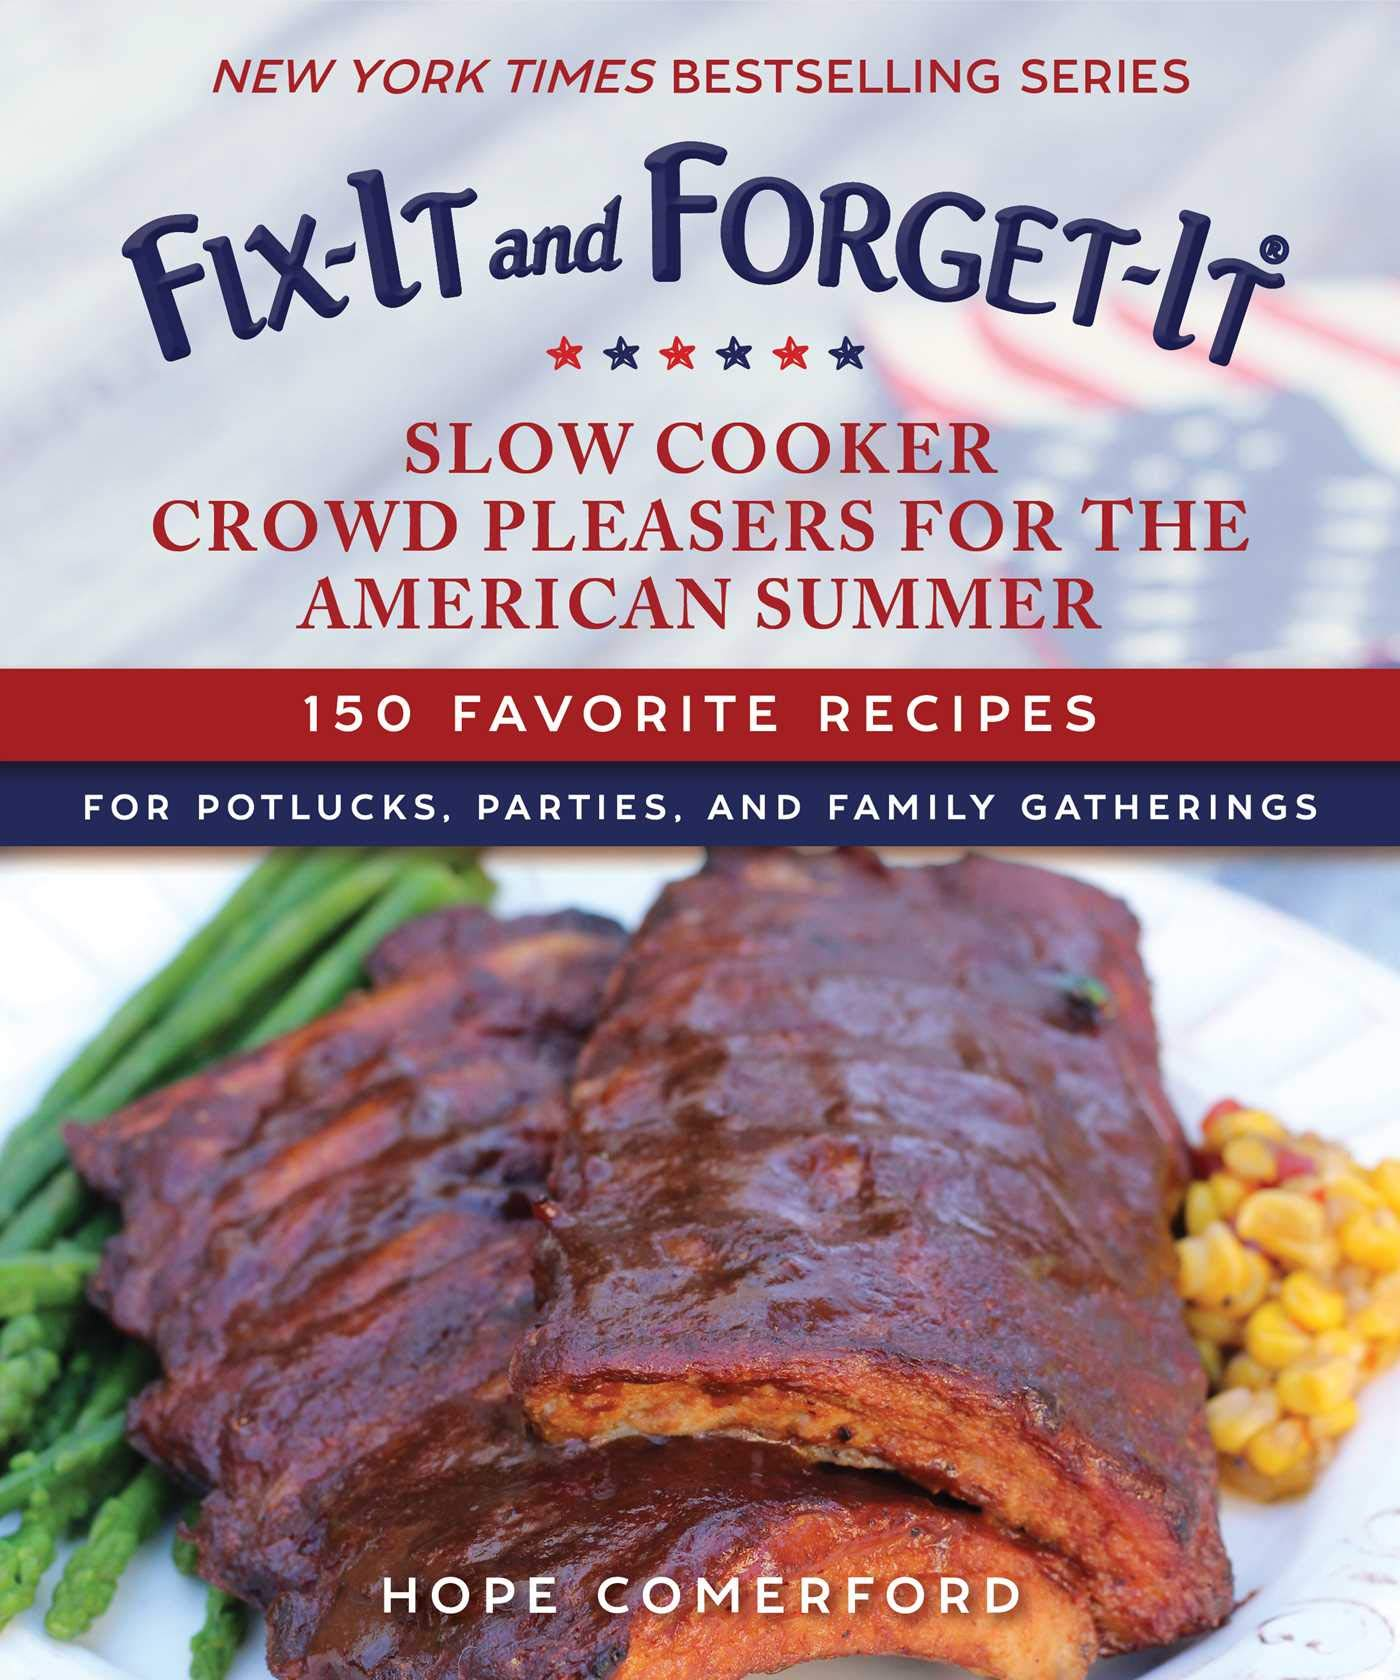 Slow Cooker Crowd Pleasers for the American Summer